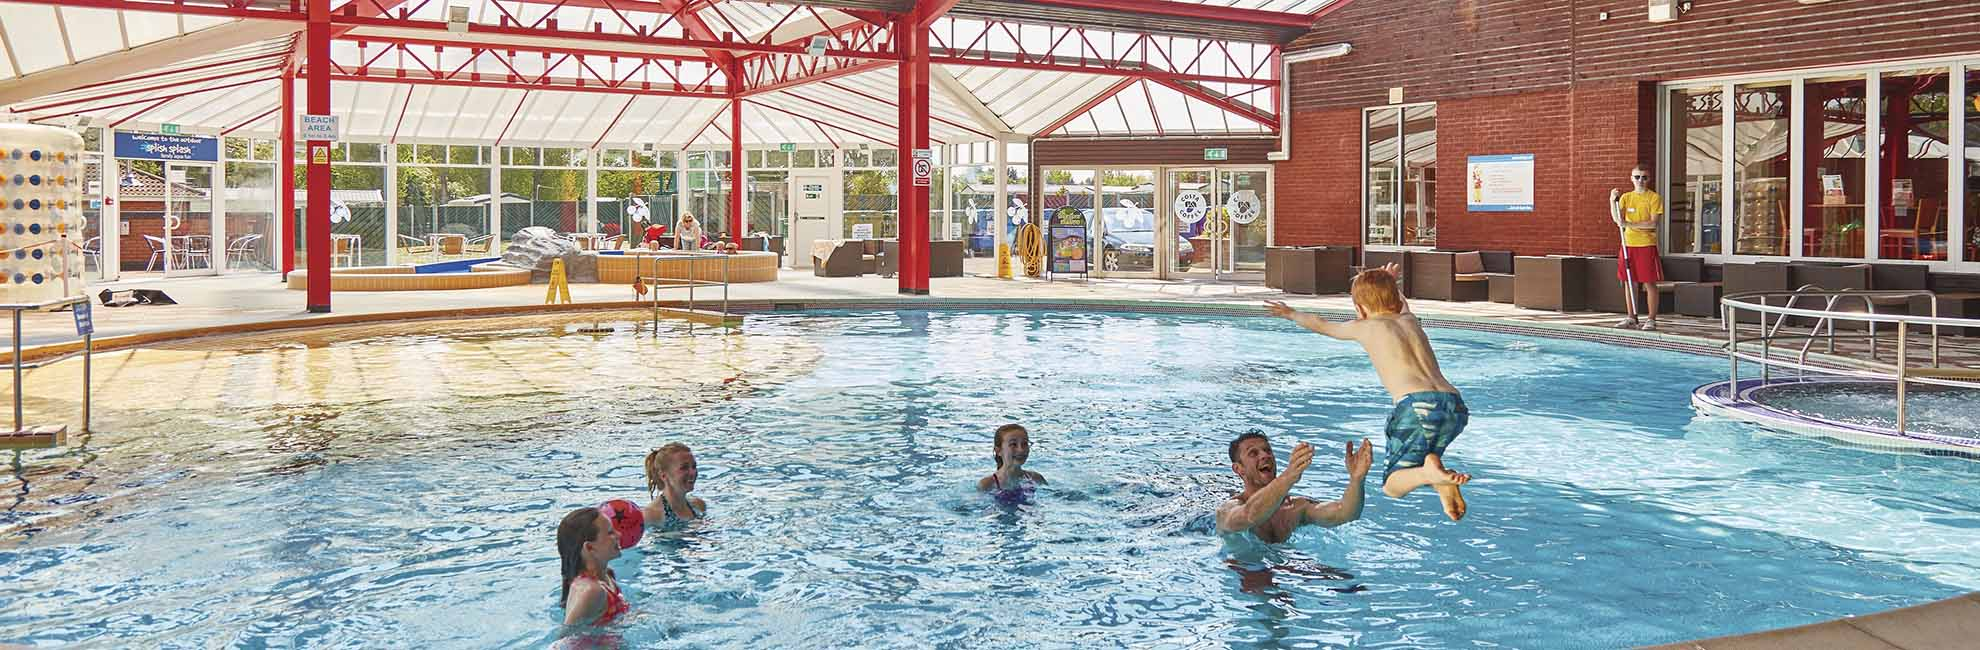 A family enjoying the indoor swimming pool at Cherry Tree Holiday Park